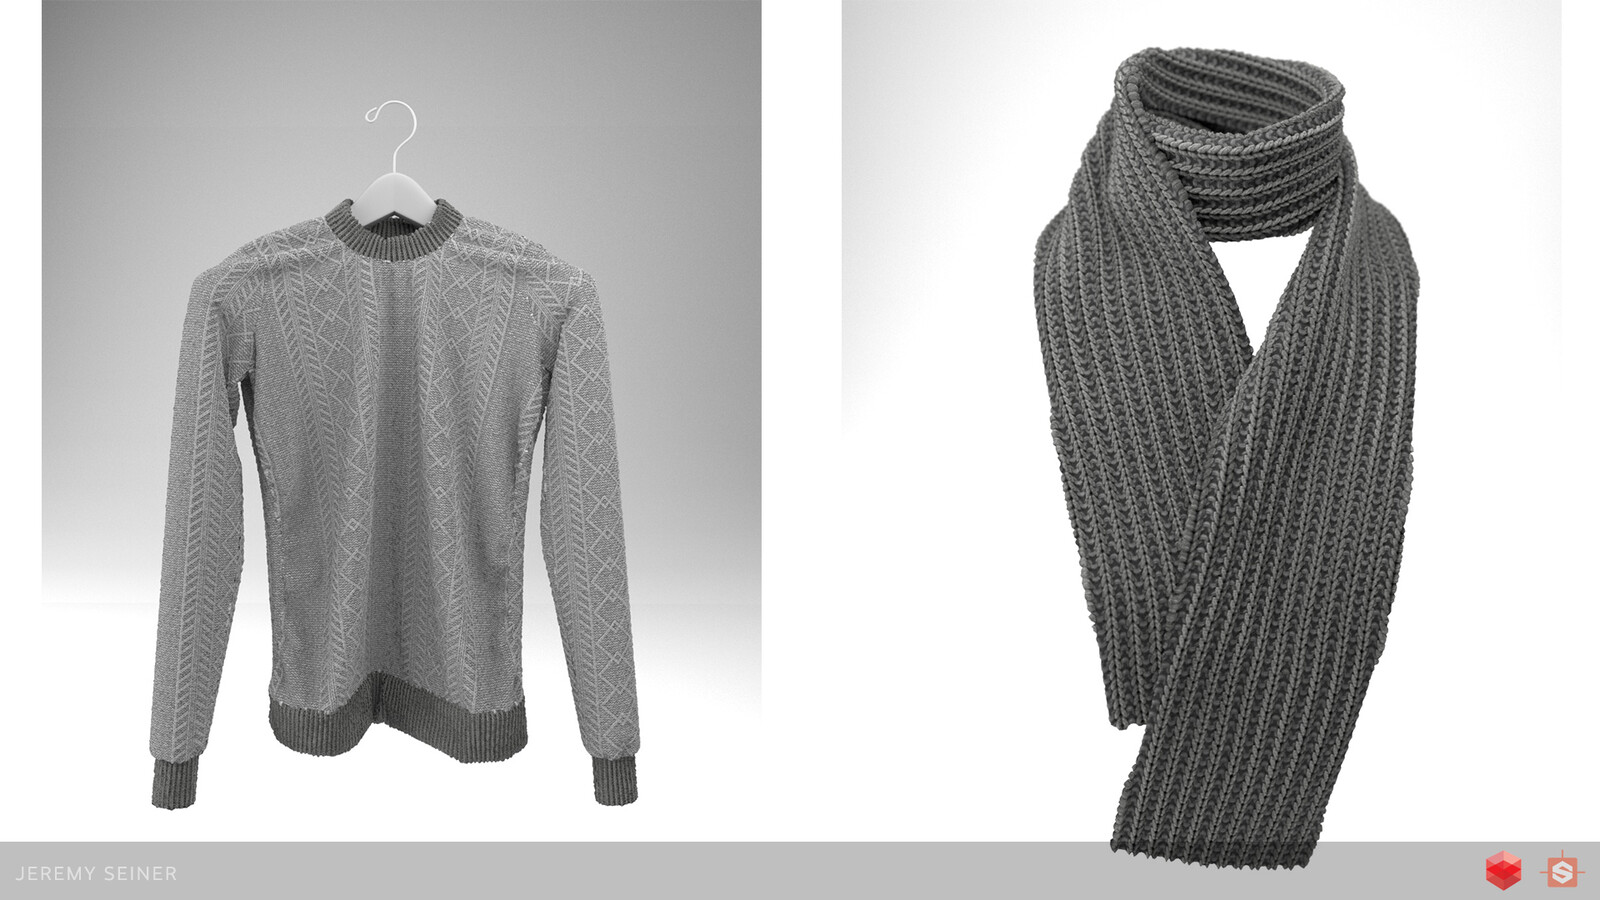 A couple variations of the fabric material applied to a sweater and scarf. Clothing assets made in Marvelous Designer.